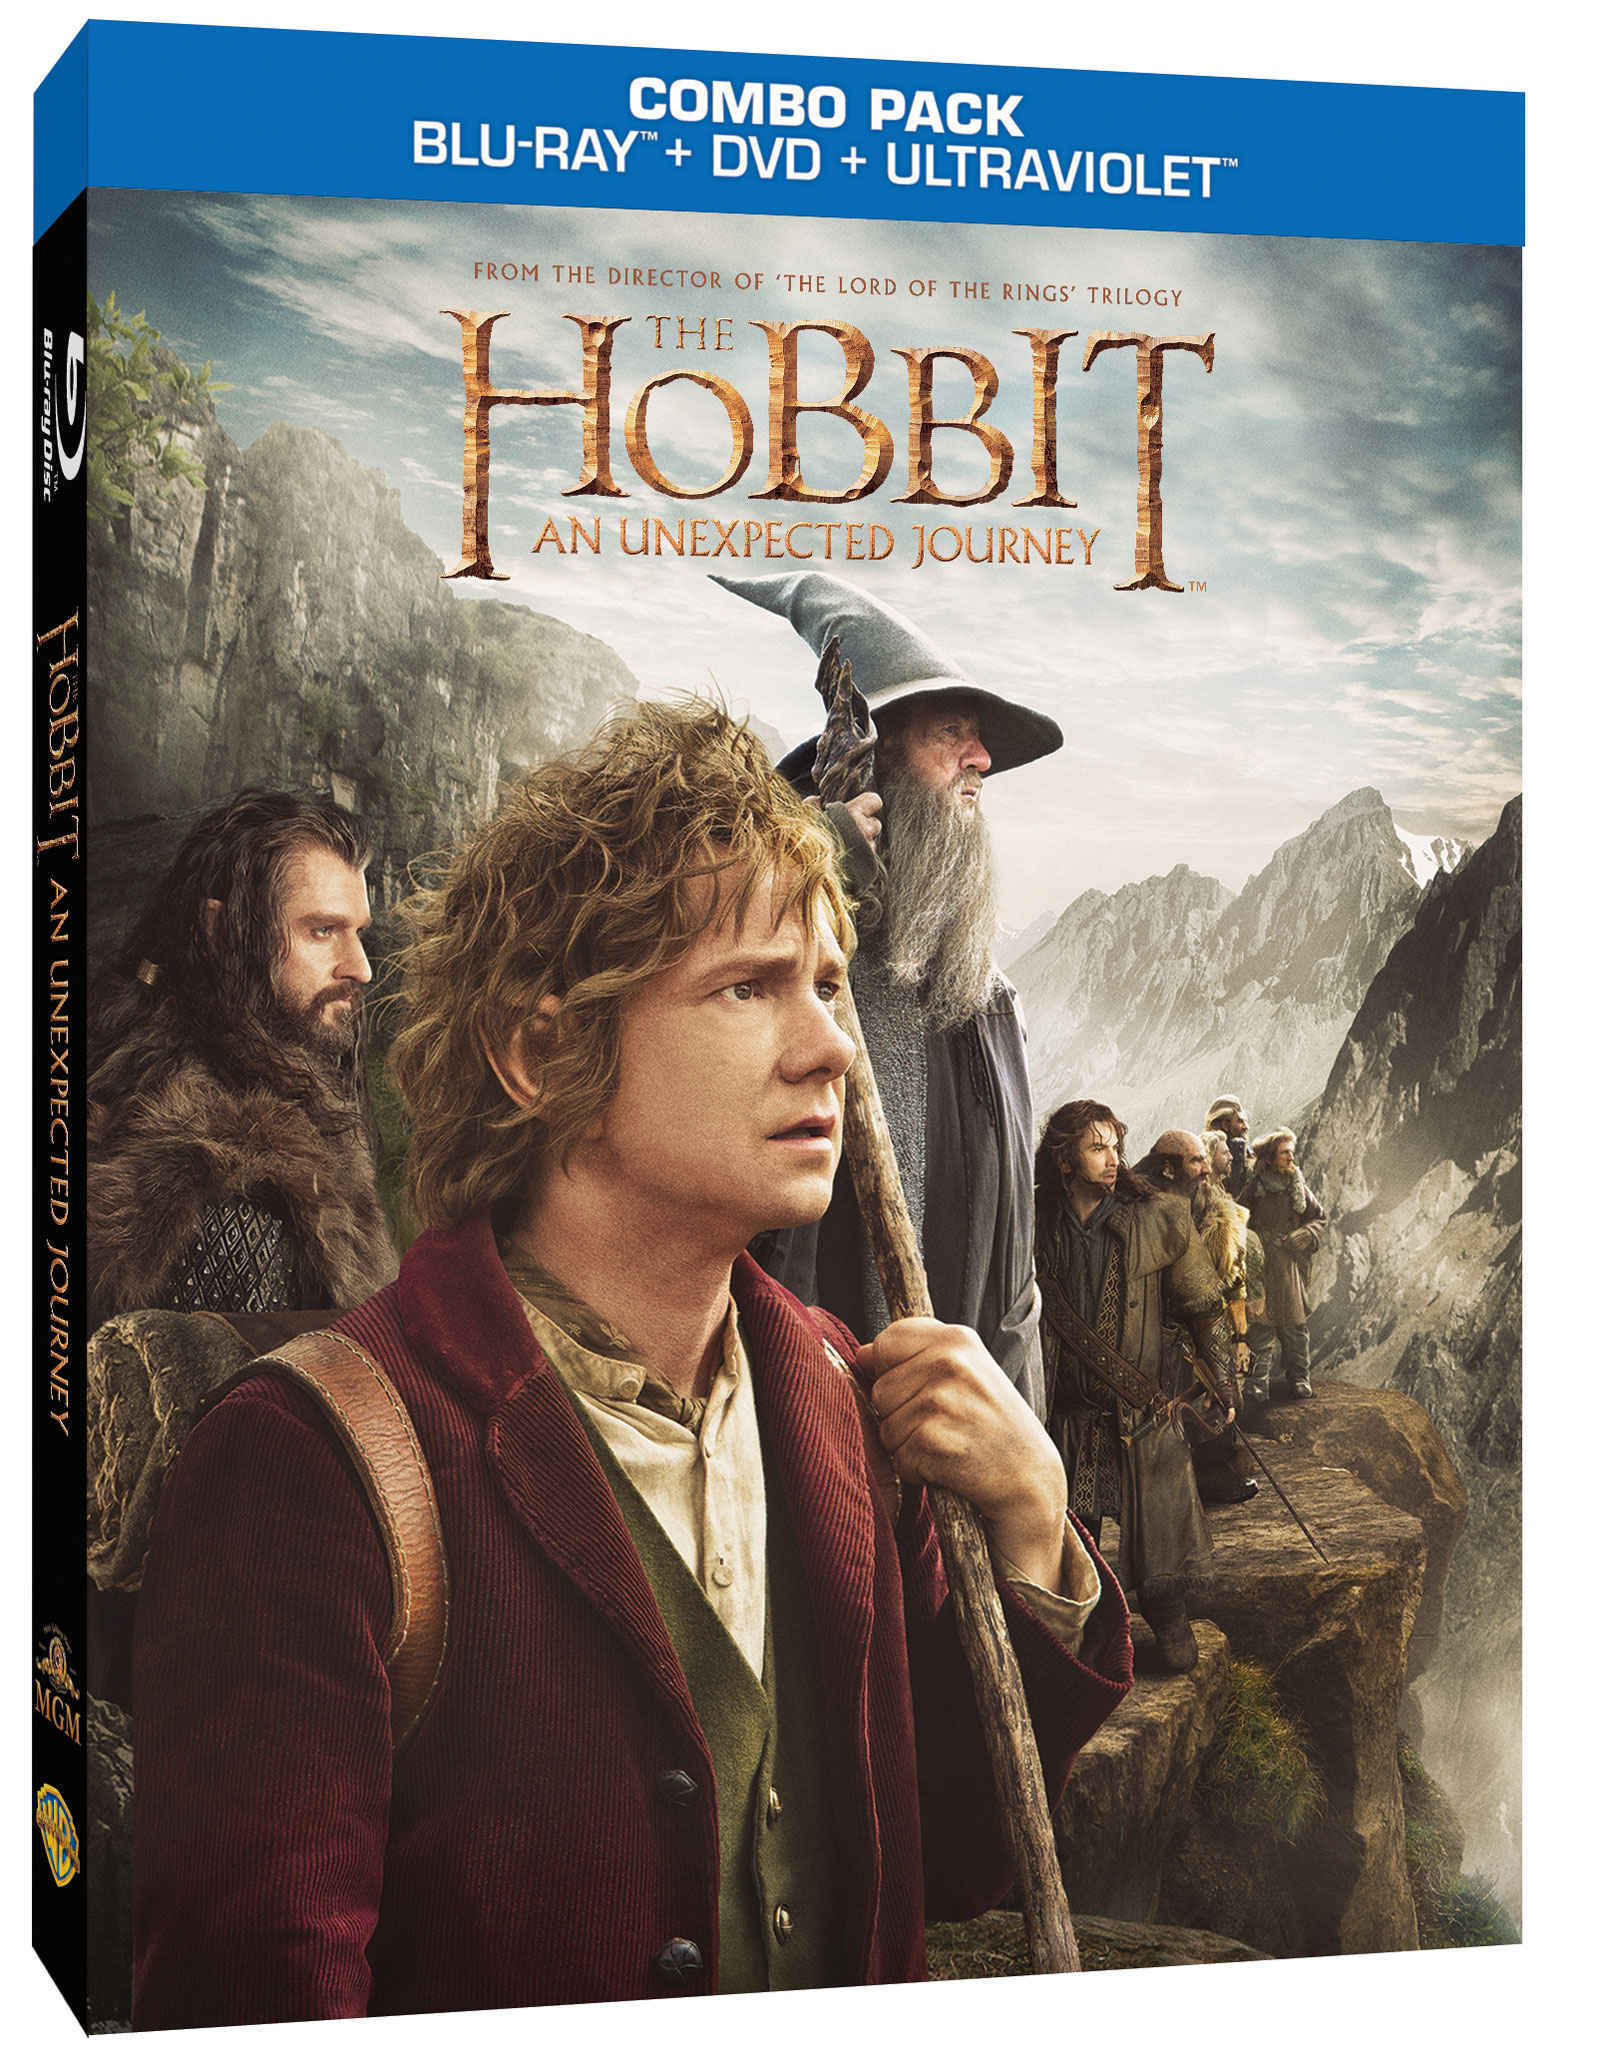 Own the hobbit: an unexpected journey on blu-ray combo pack 3/19.